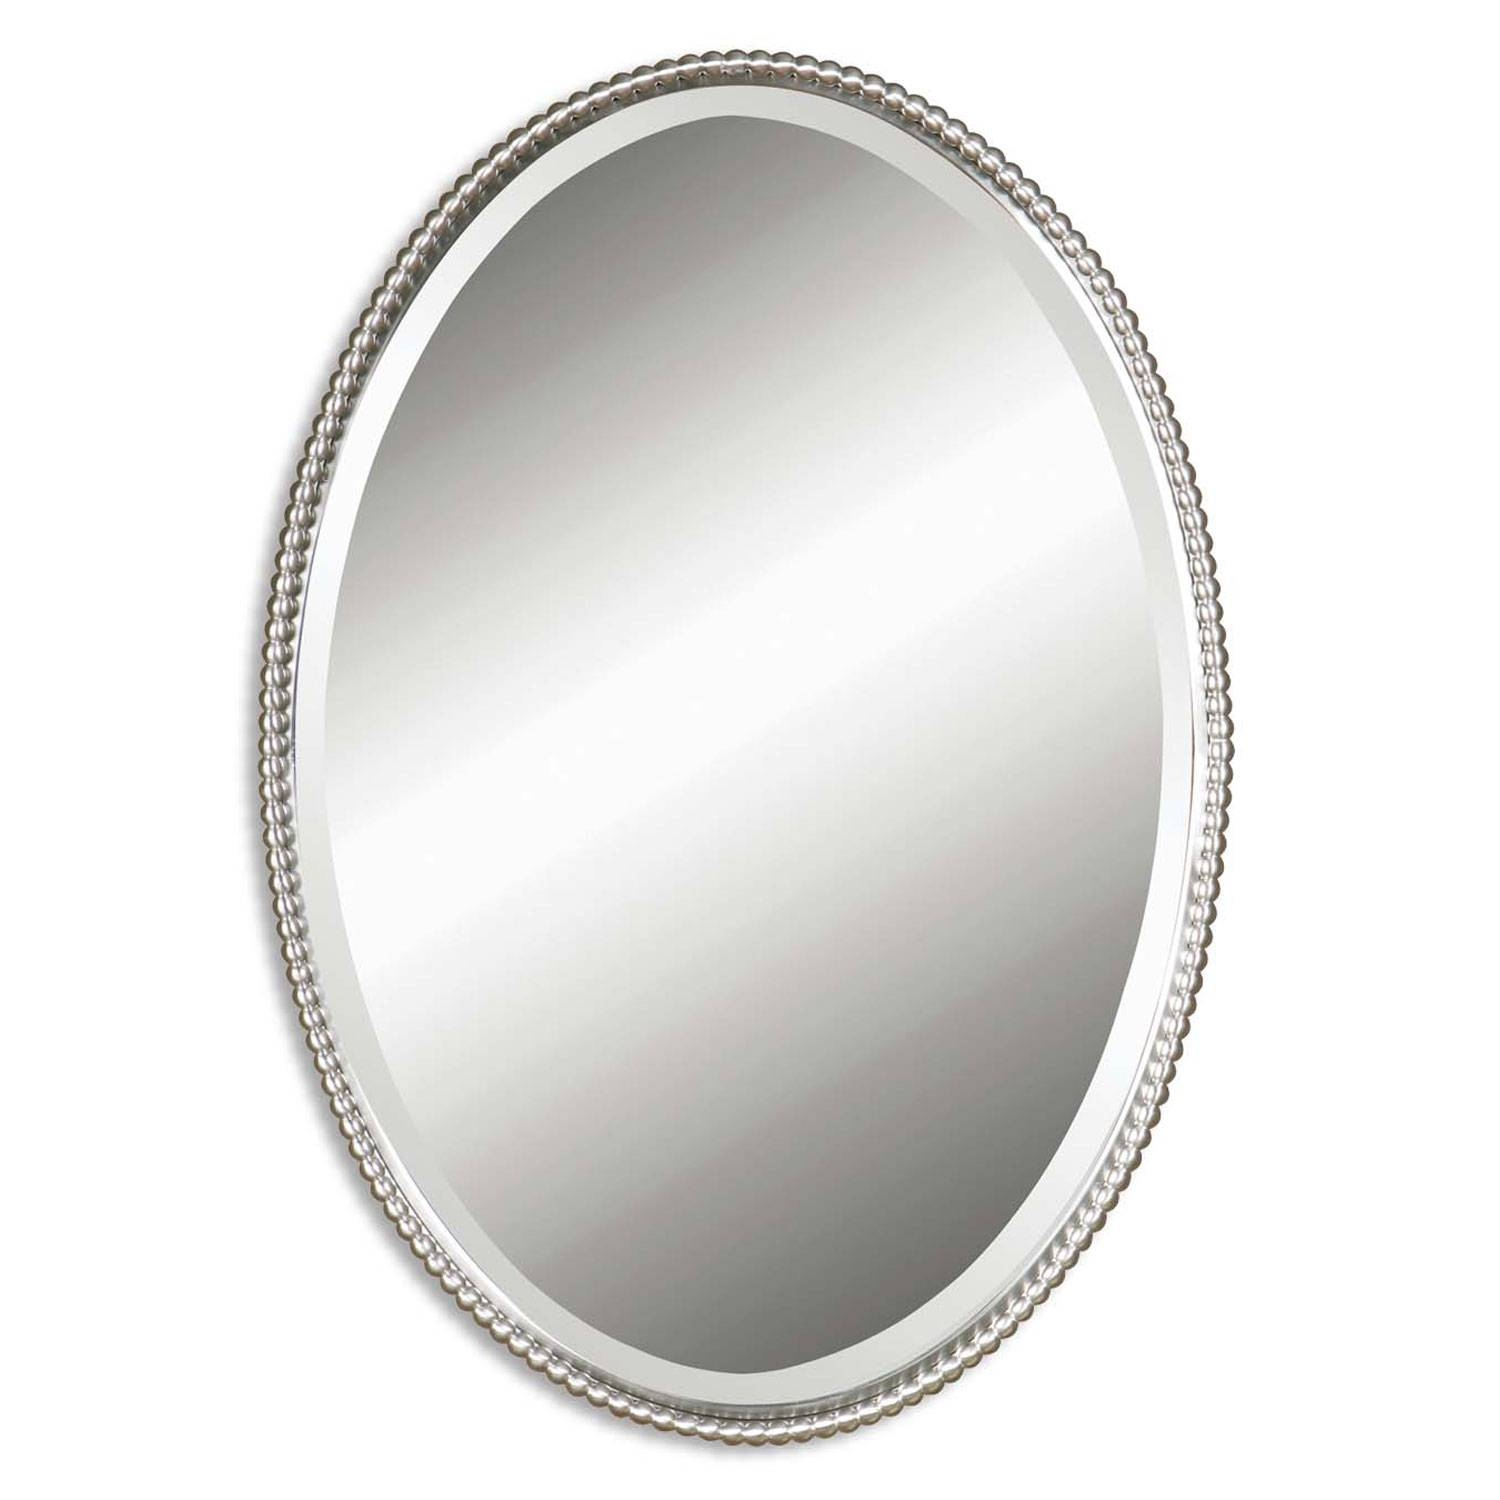 Oval White Mirror Bathroom - Imanlive throughout Oval White Mirrors (Image 12 of 15)